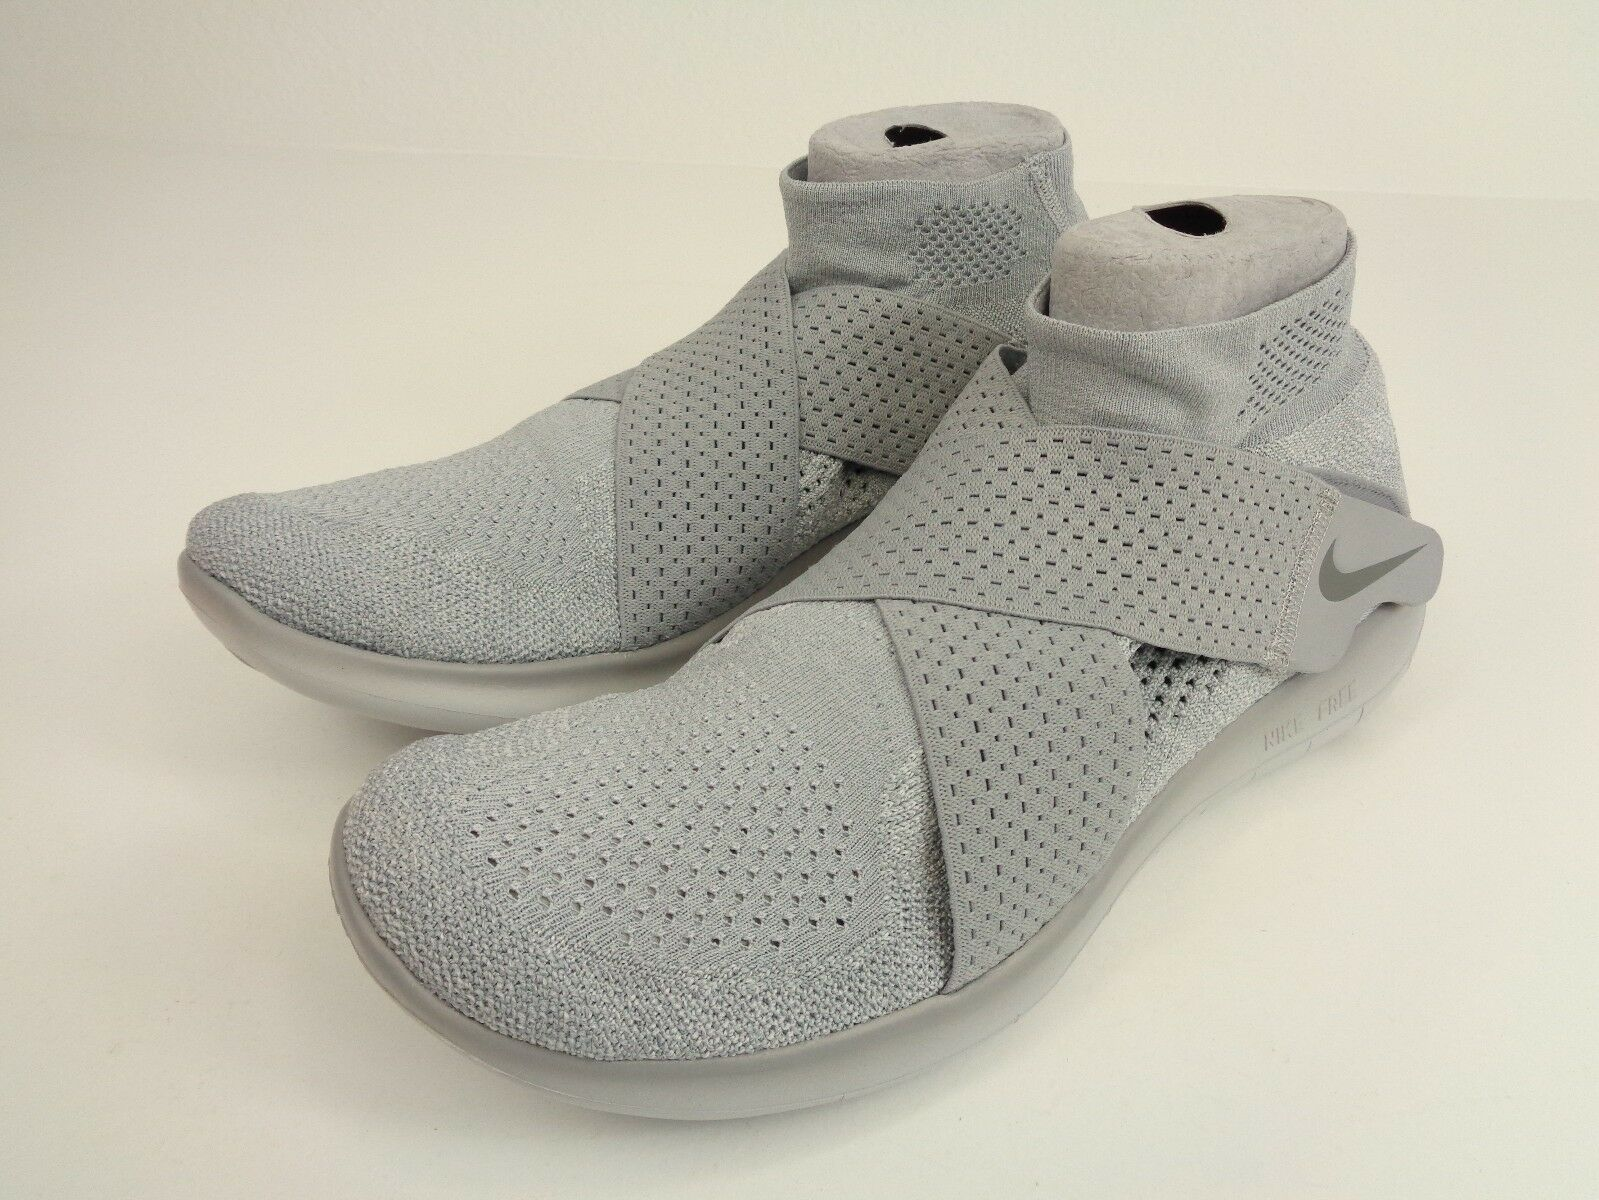 new product 49445 e7950 ... purchase nike free rn motion mens fk 2017 mens motion sz 11 schuhe wolf  gray 880845